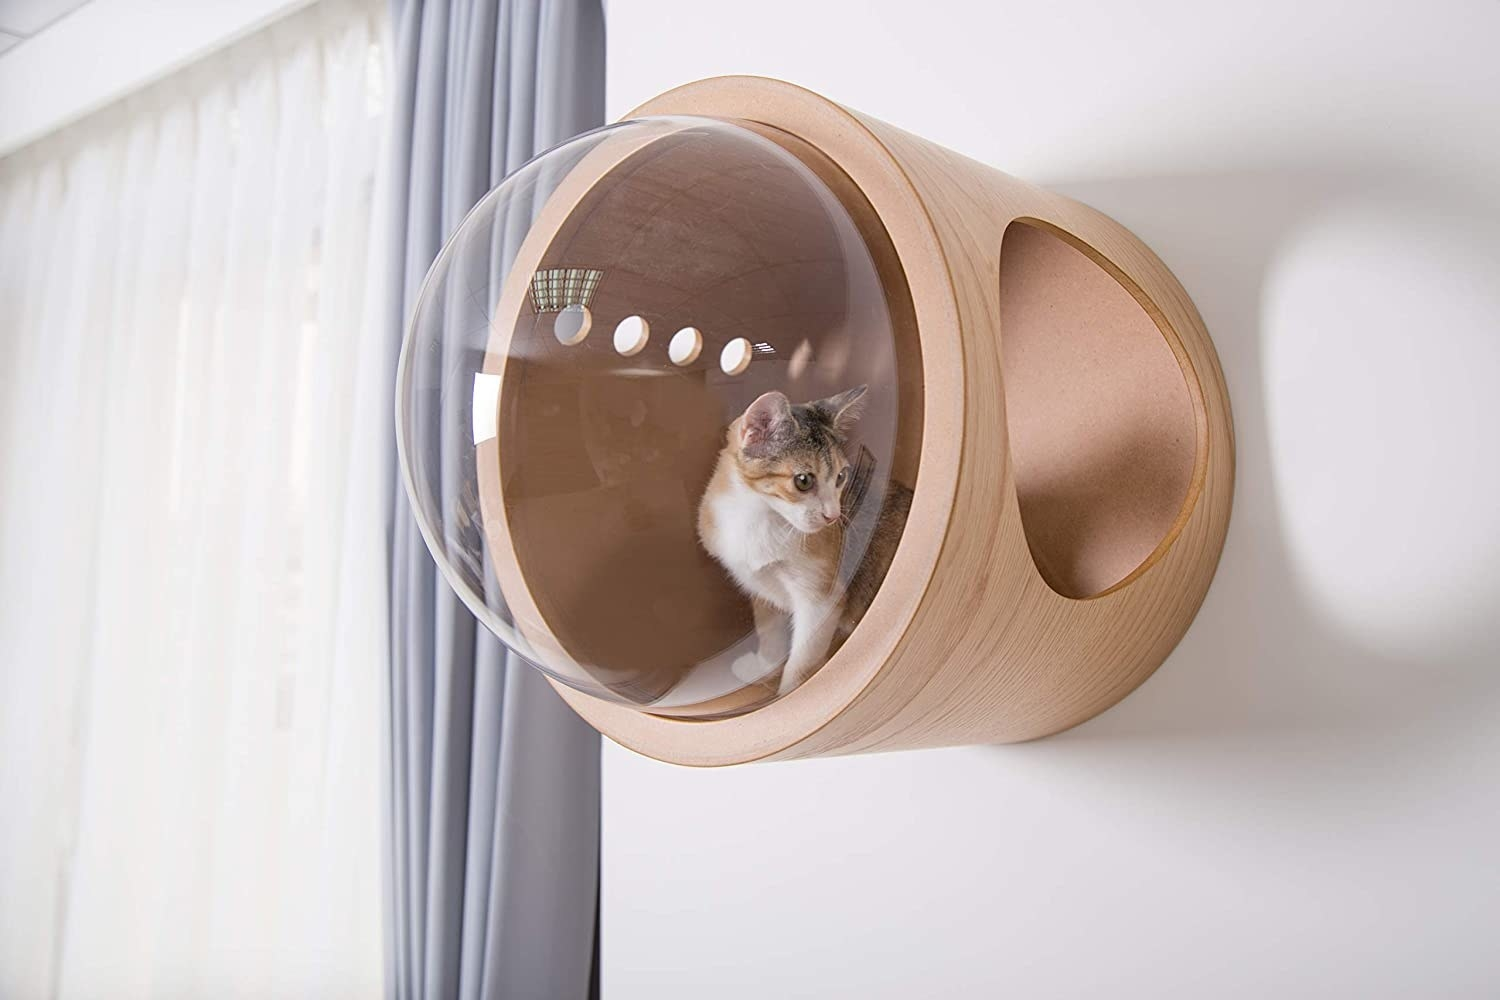 Product photo showing the MYZOO Spaceship cat bed mounted on a white wall with a kitten looking through the clear dome